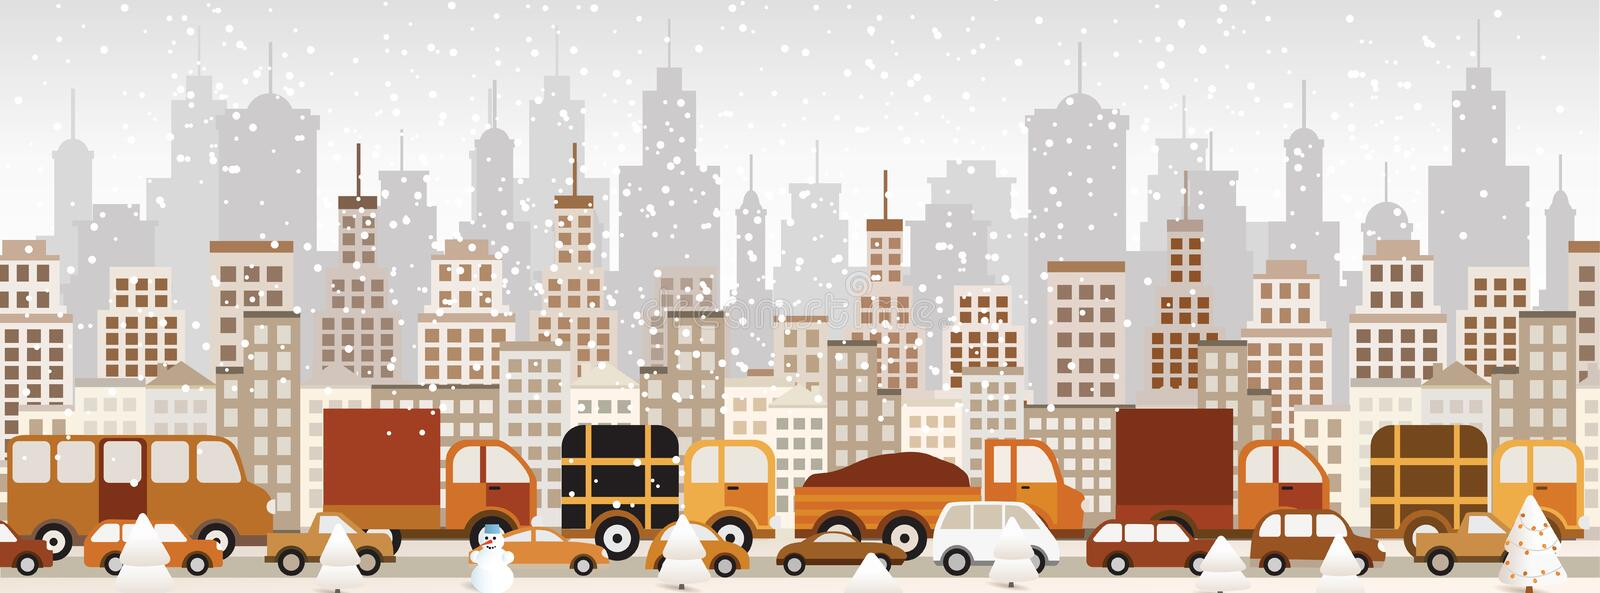 Traffic jam in the city (Winter) vector illustration